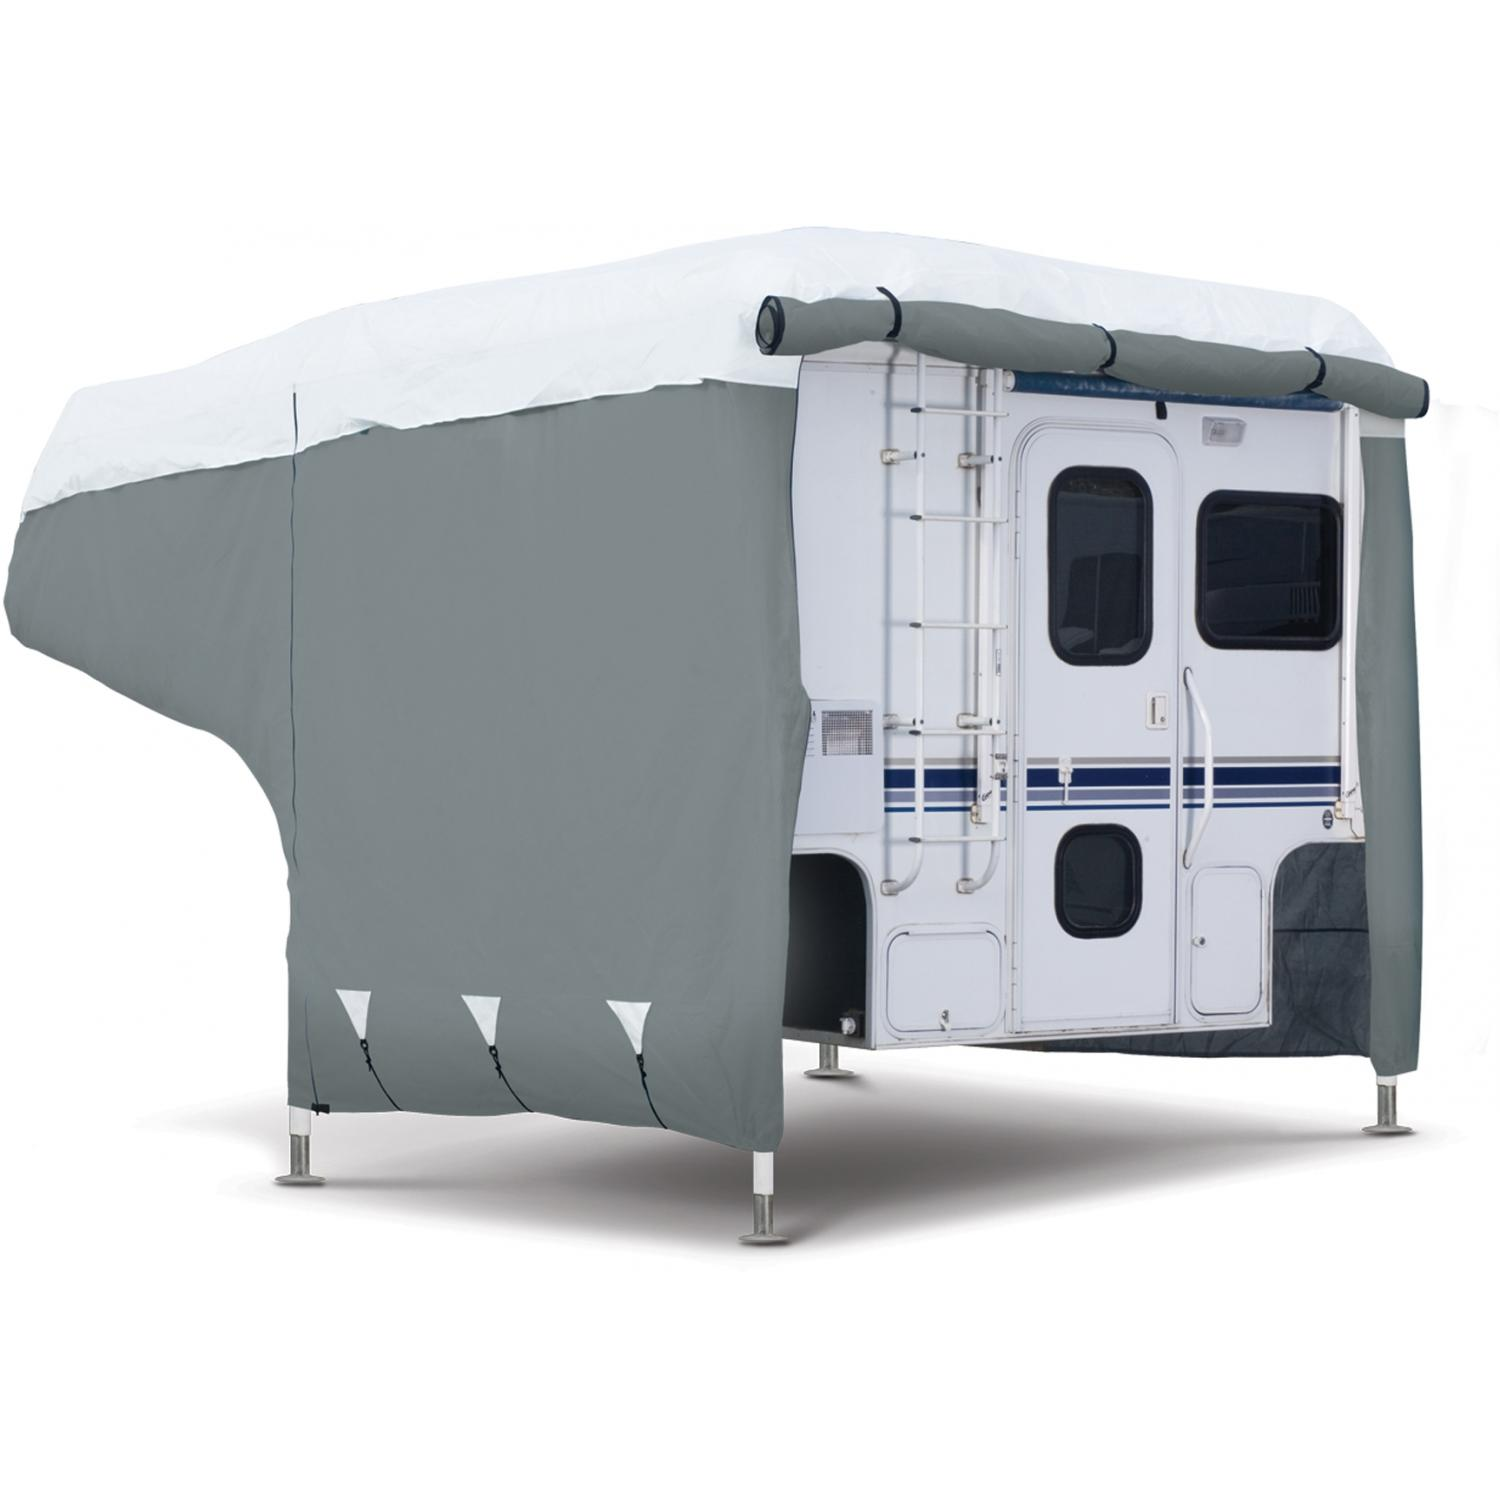 Classic Accessories PolyPRO 3 Camper Cover - Grey/White - Medium 2504717